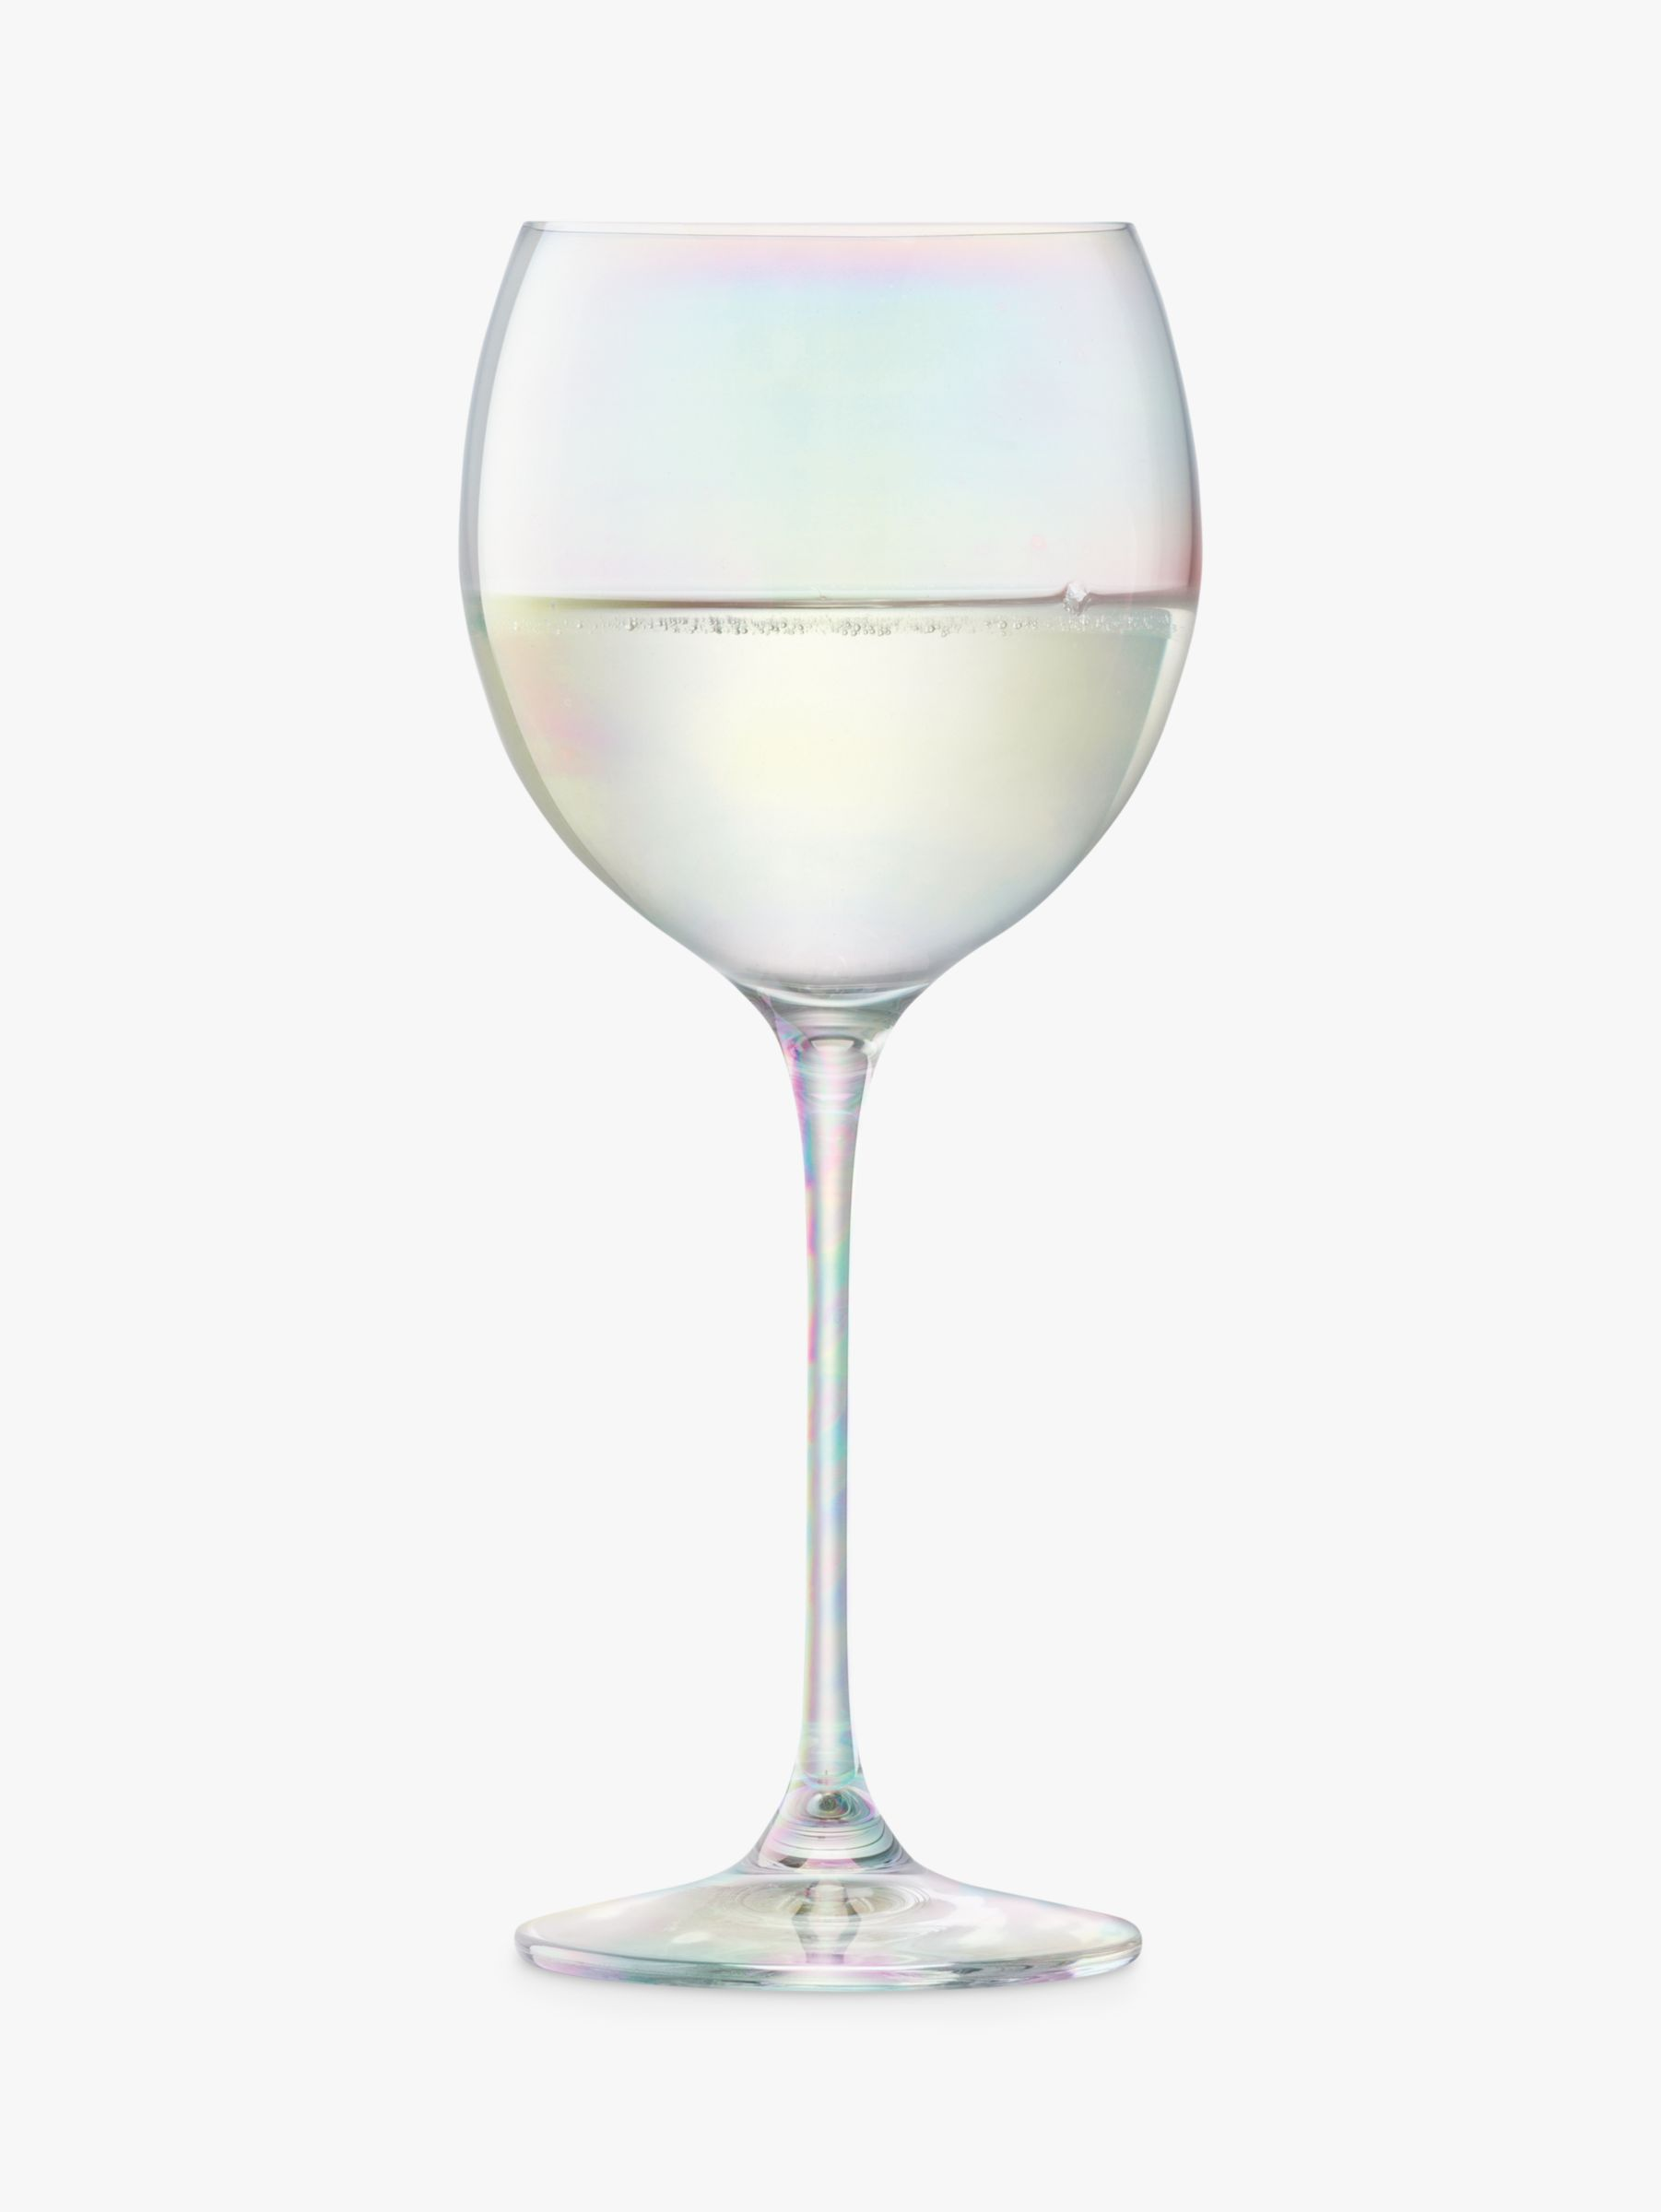 LSA International LSA International Polka Wine Glasses, Mother of Pearl, 400ml, Set of 4